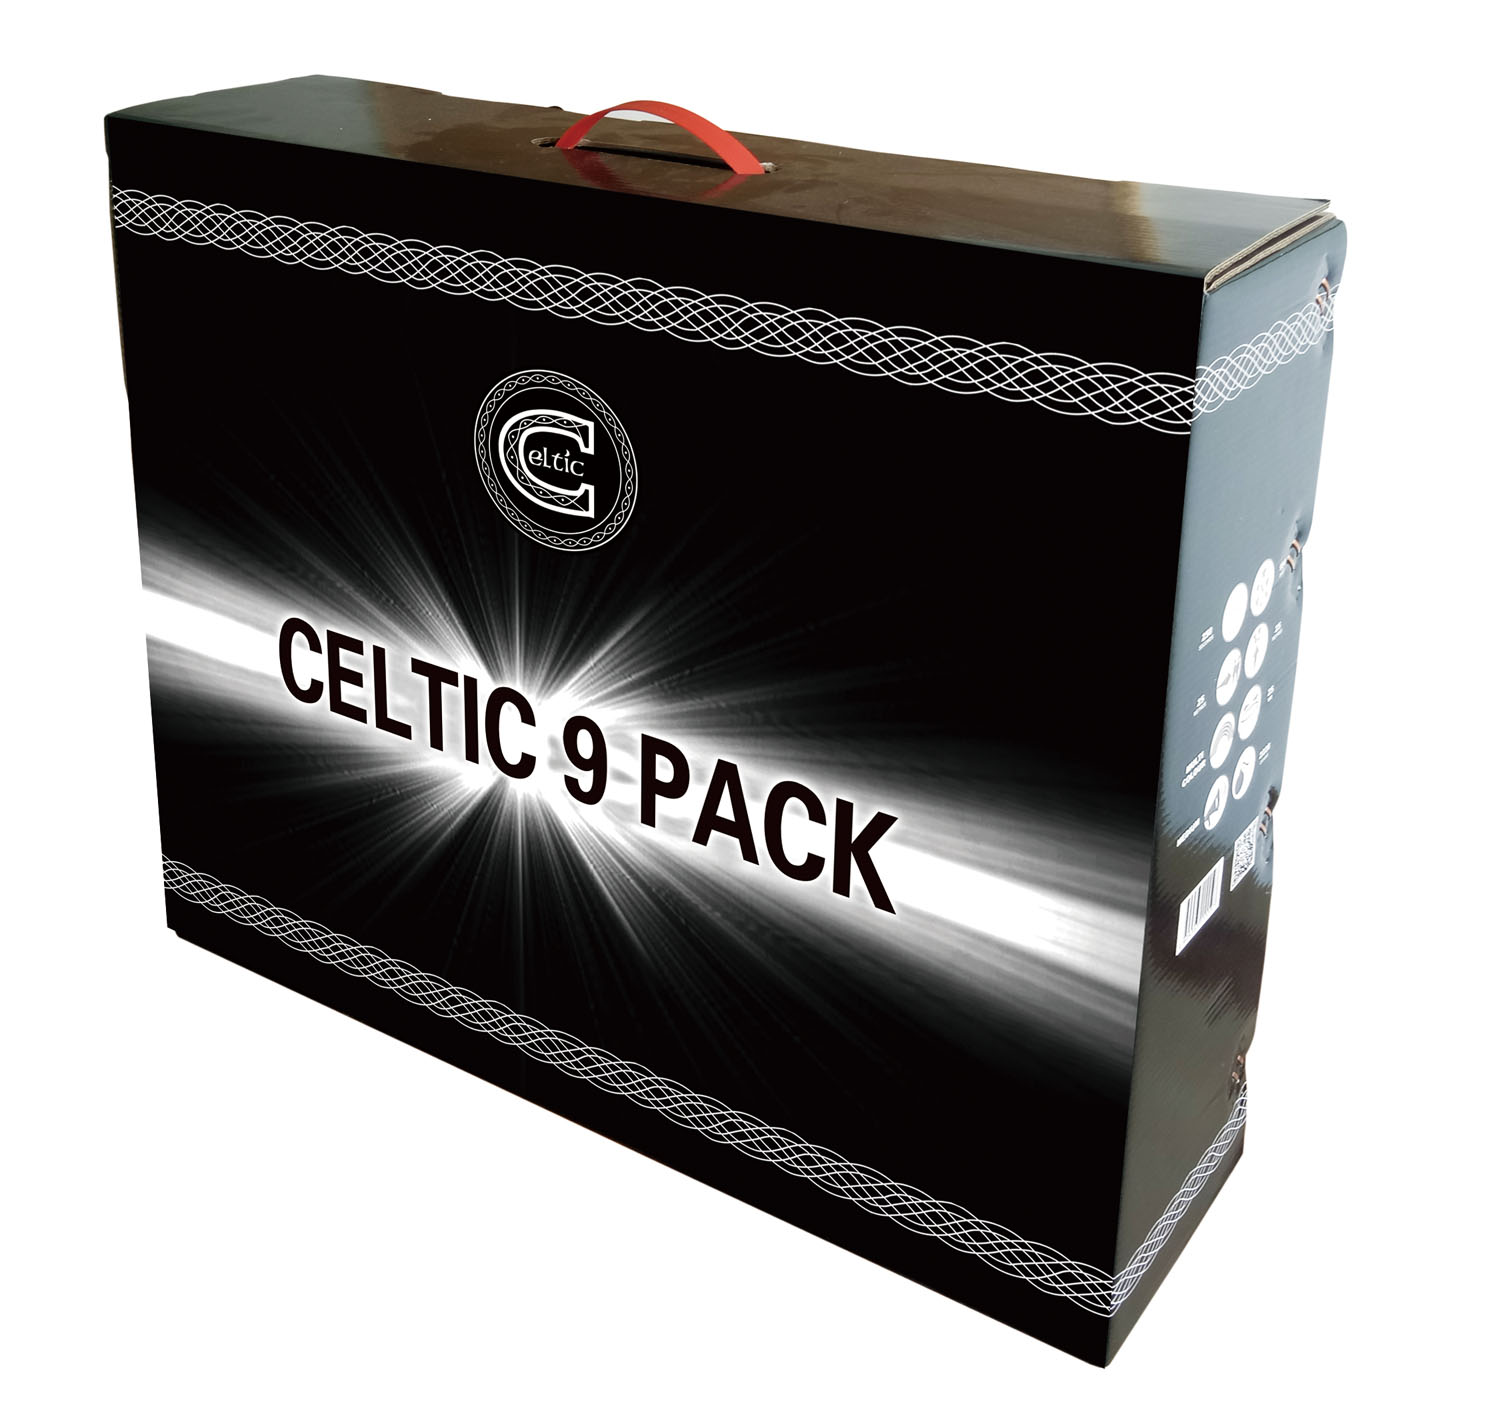 Celtic 9-Pack By Celtic Fireworks